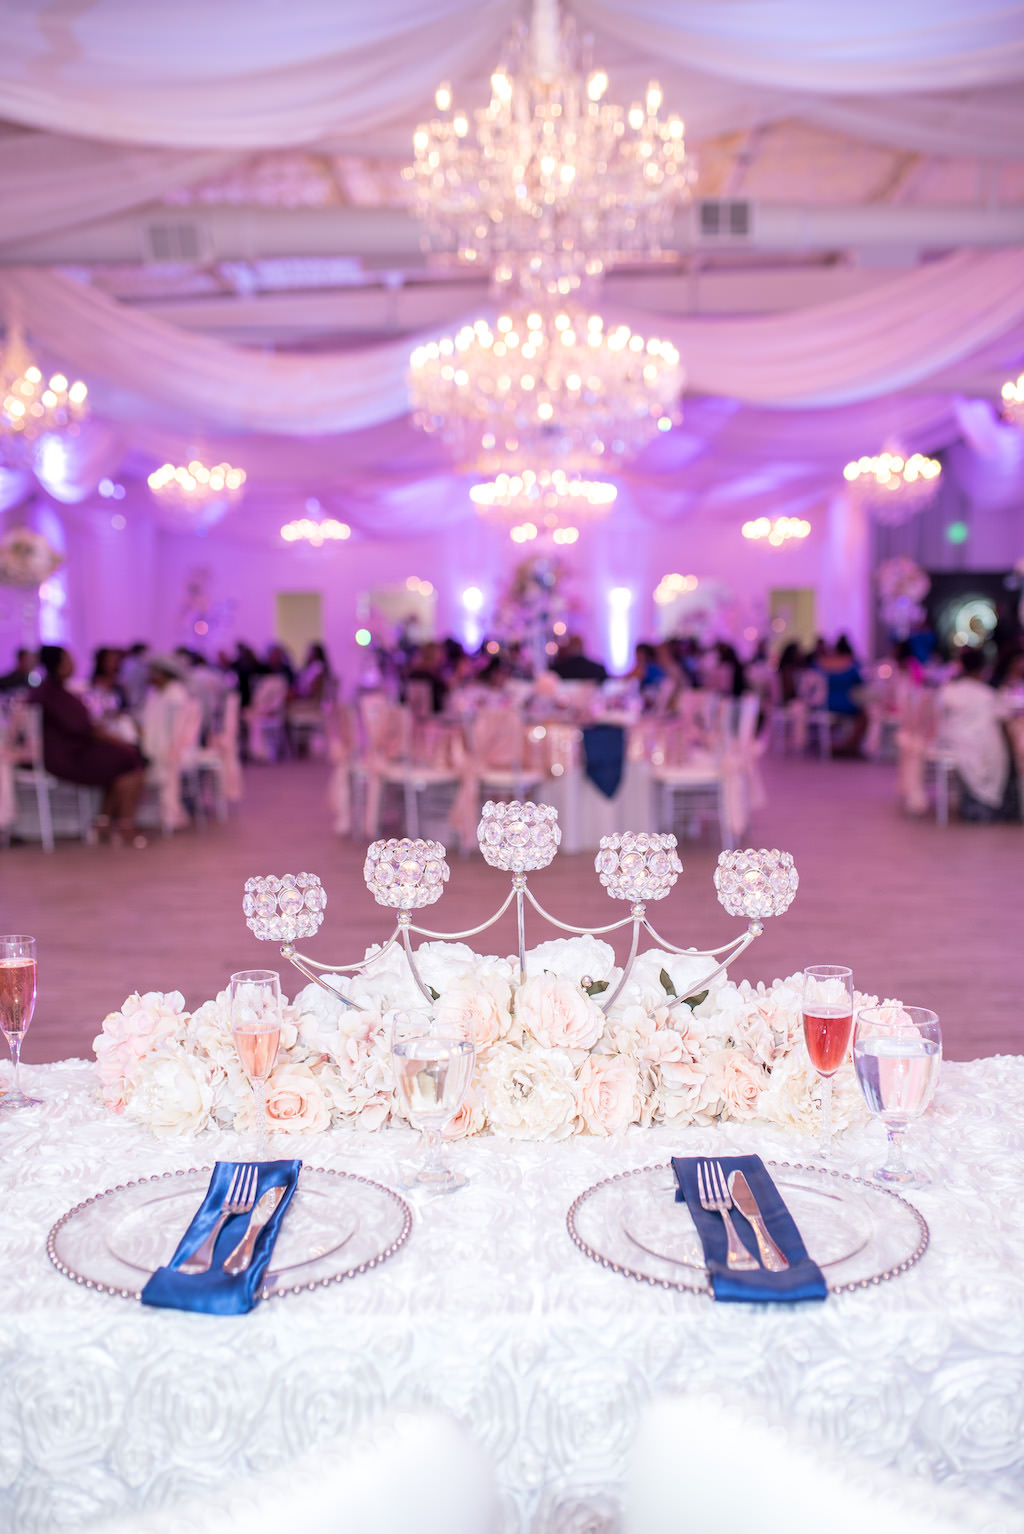 Indoor Wedding Reception Sweetheart Table Decor with White and Blush Pink Roses Centerpiece and Crystal Candle Holders, Clear Beaded Chargers, White Roses Tablecloth and White Draping and Chandeliers with Pink Uplighting   Tampa Bay Wedding Venue The Crystal Ballroom